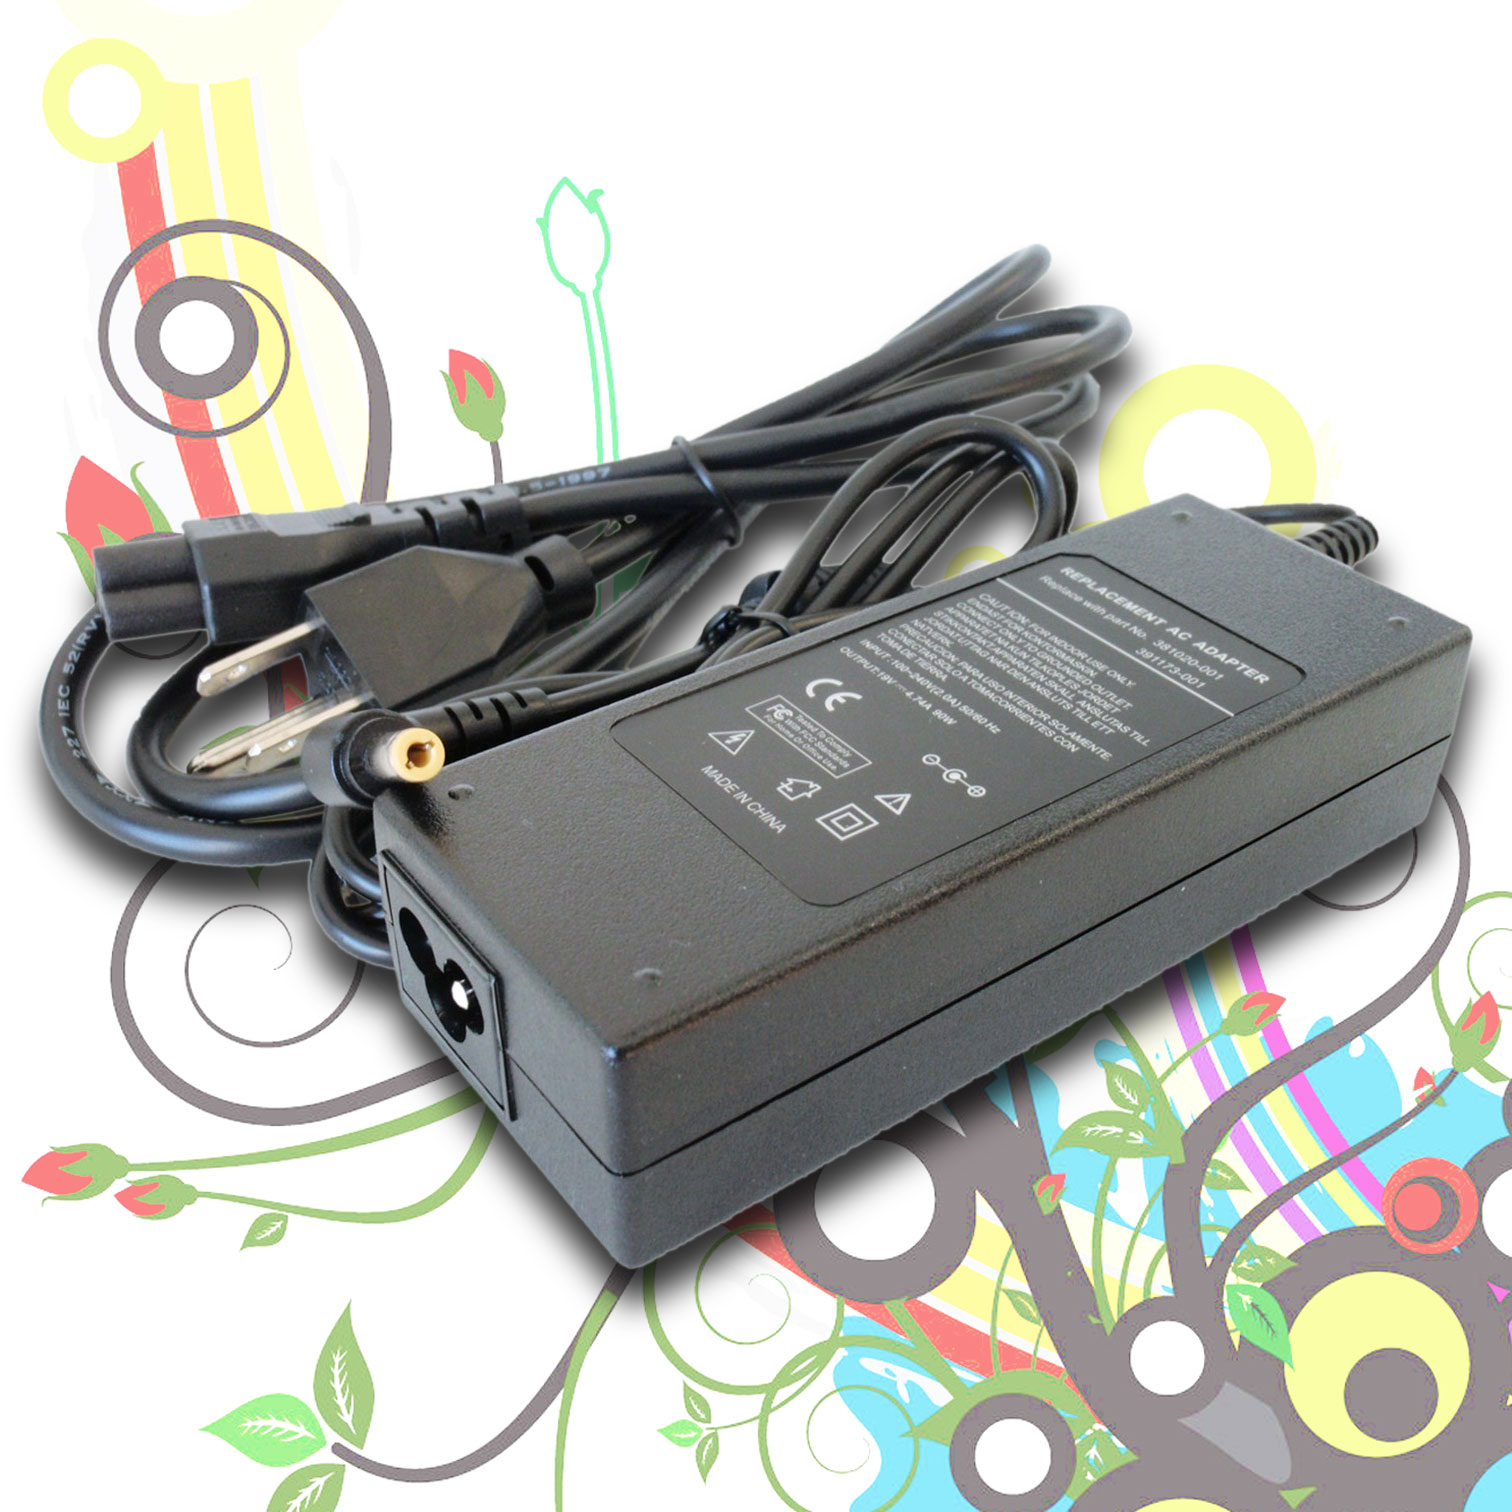 90W AC Power Adapter for Toshiba Satellite A135-S2326 A305-S6857 M305D A505 P305